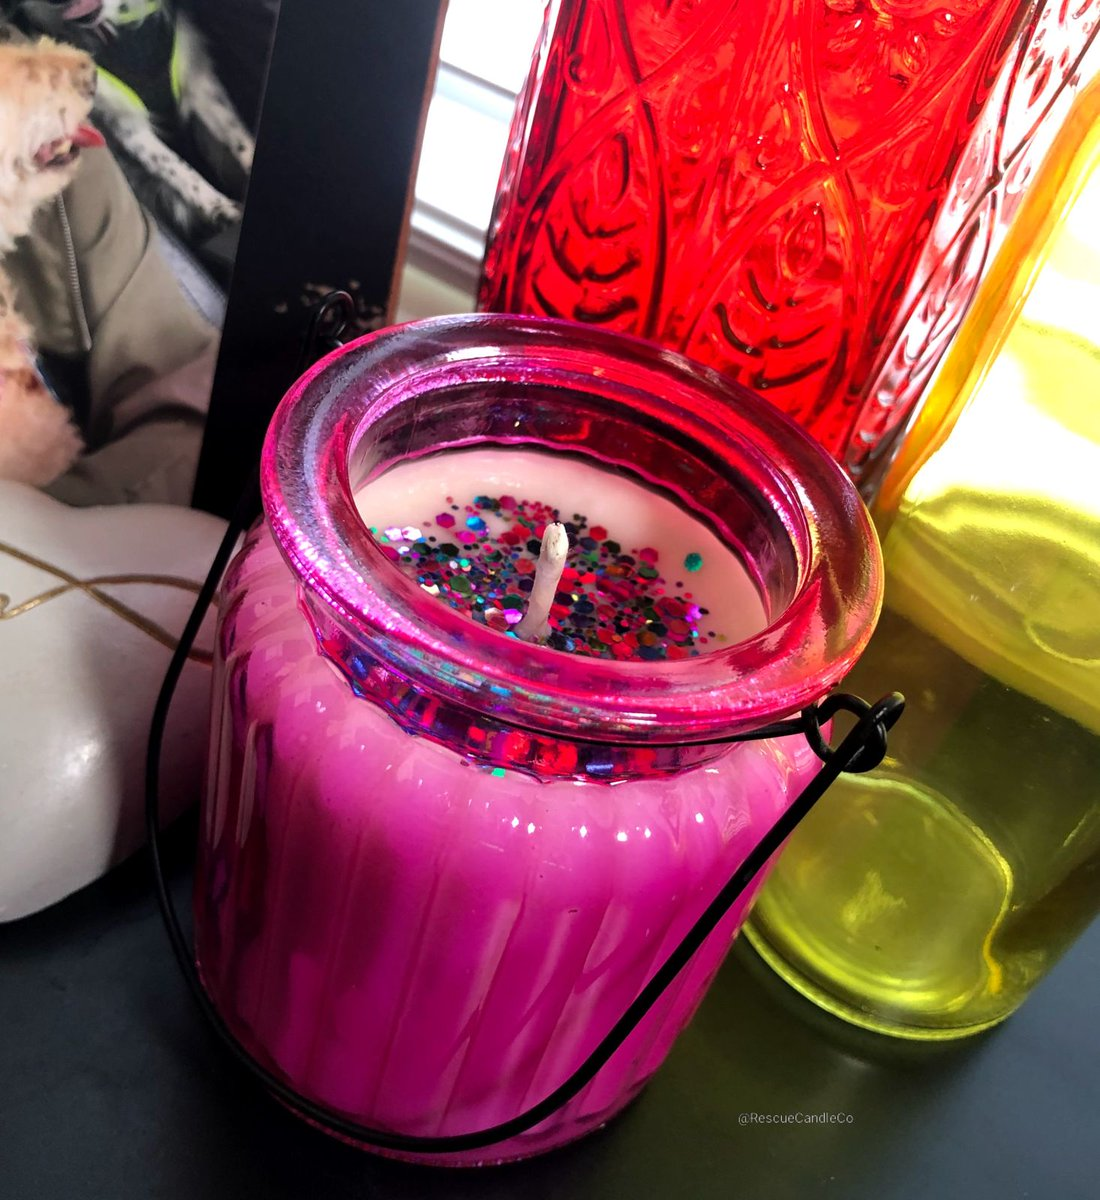 """Not a floral arrangement, but smells like one! 💐 """"Flower Bouquet"""" comes in a variety of colors! 💜💙💚💗 LIMITED STOCK! Free US shipping over $35!  #Etsy #flowers #ValentinesDay #valentinesdaygift #candles #shopsmall"""